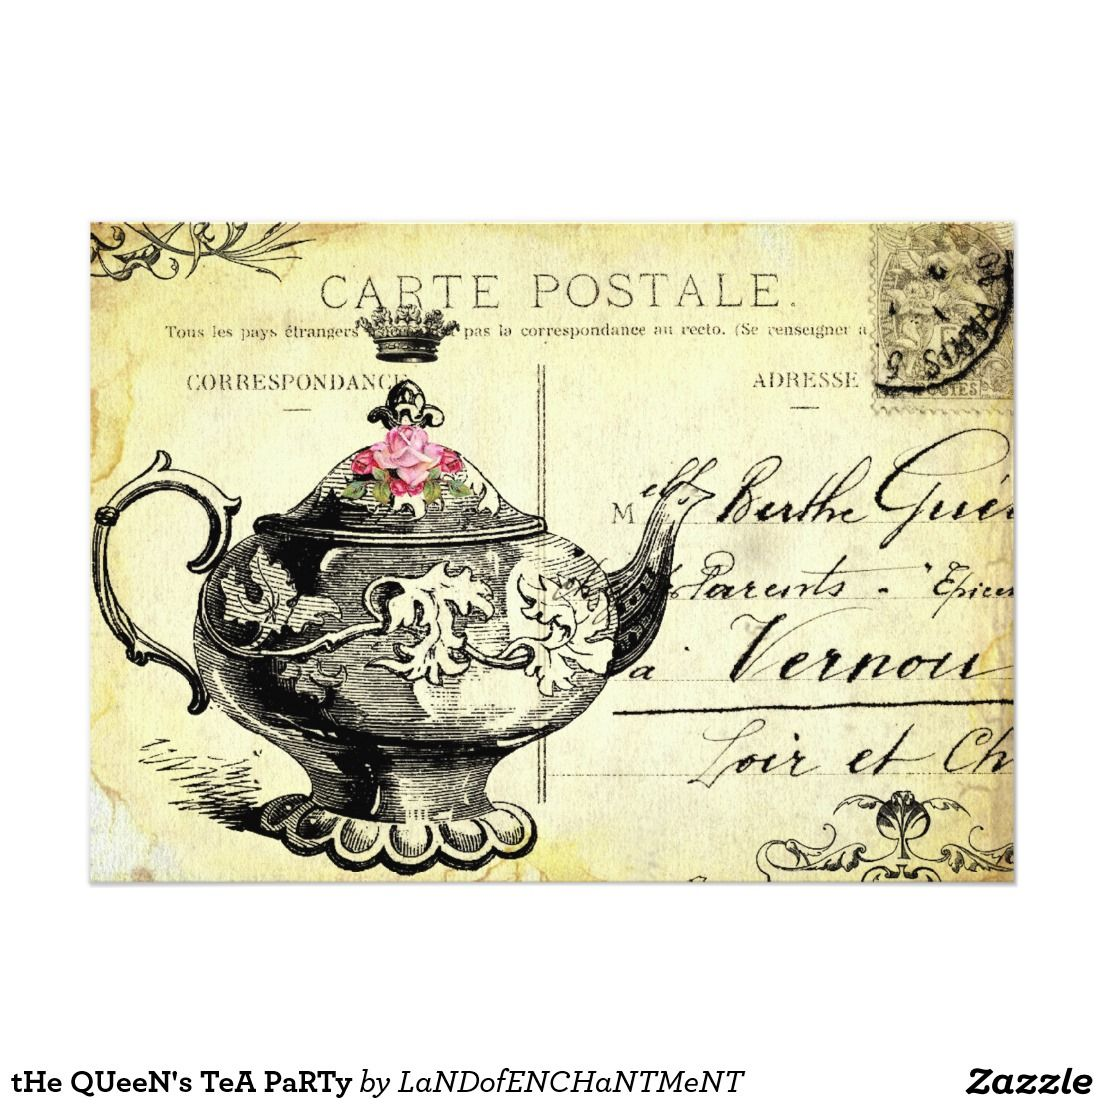 The queens tea party 5x7 paper invitation card downton abbey the queens tea party 5x7 paper invitation card monicamarmolfo Image collections